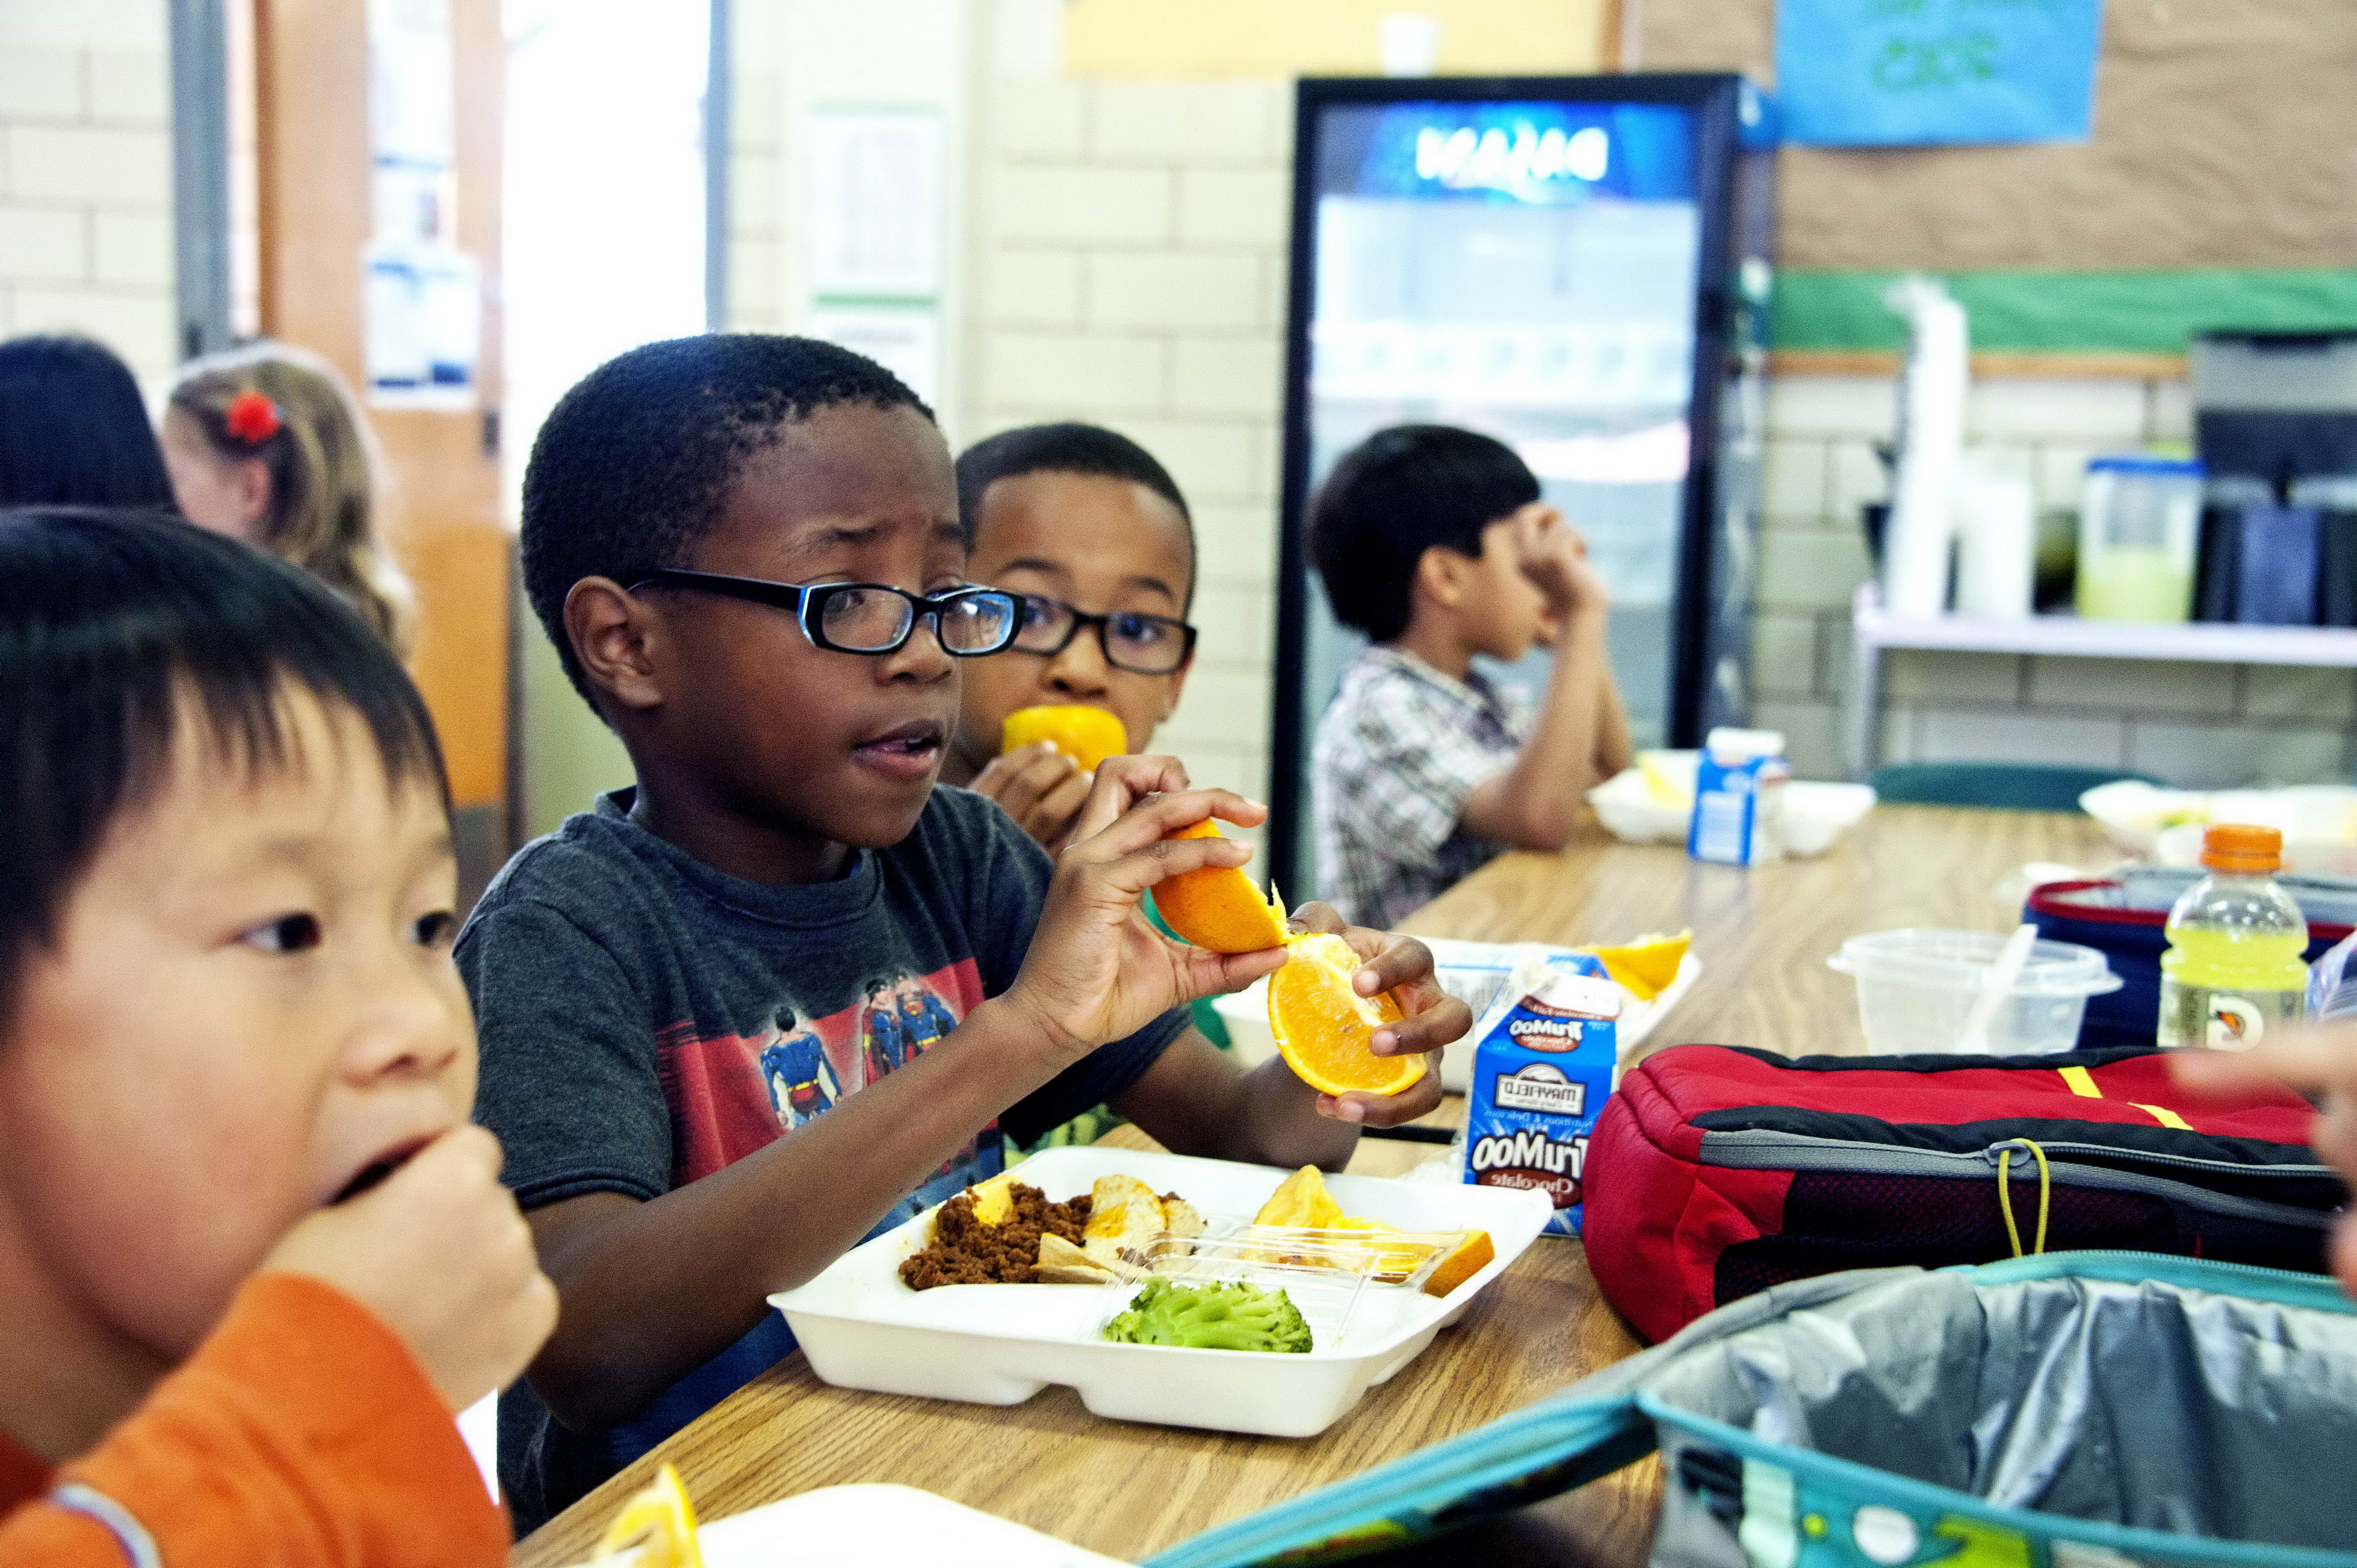 Video Of Kids Sharing Their Lunch With Boy On Class